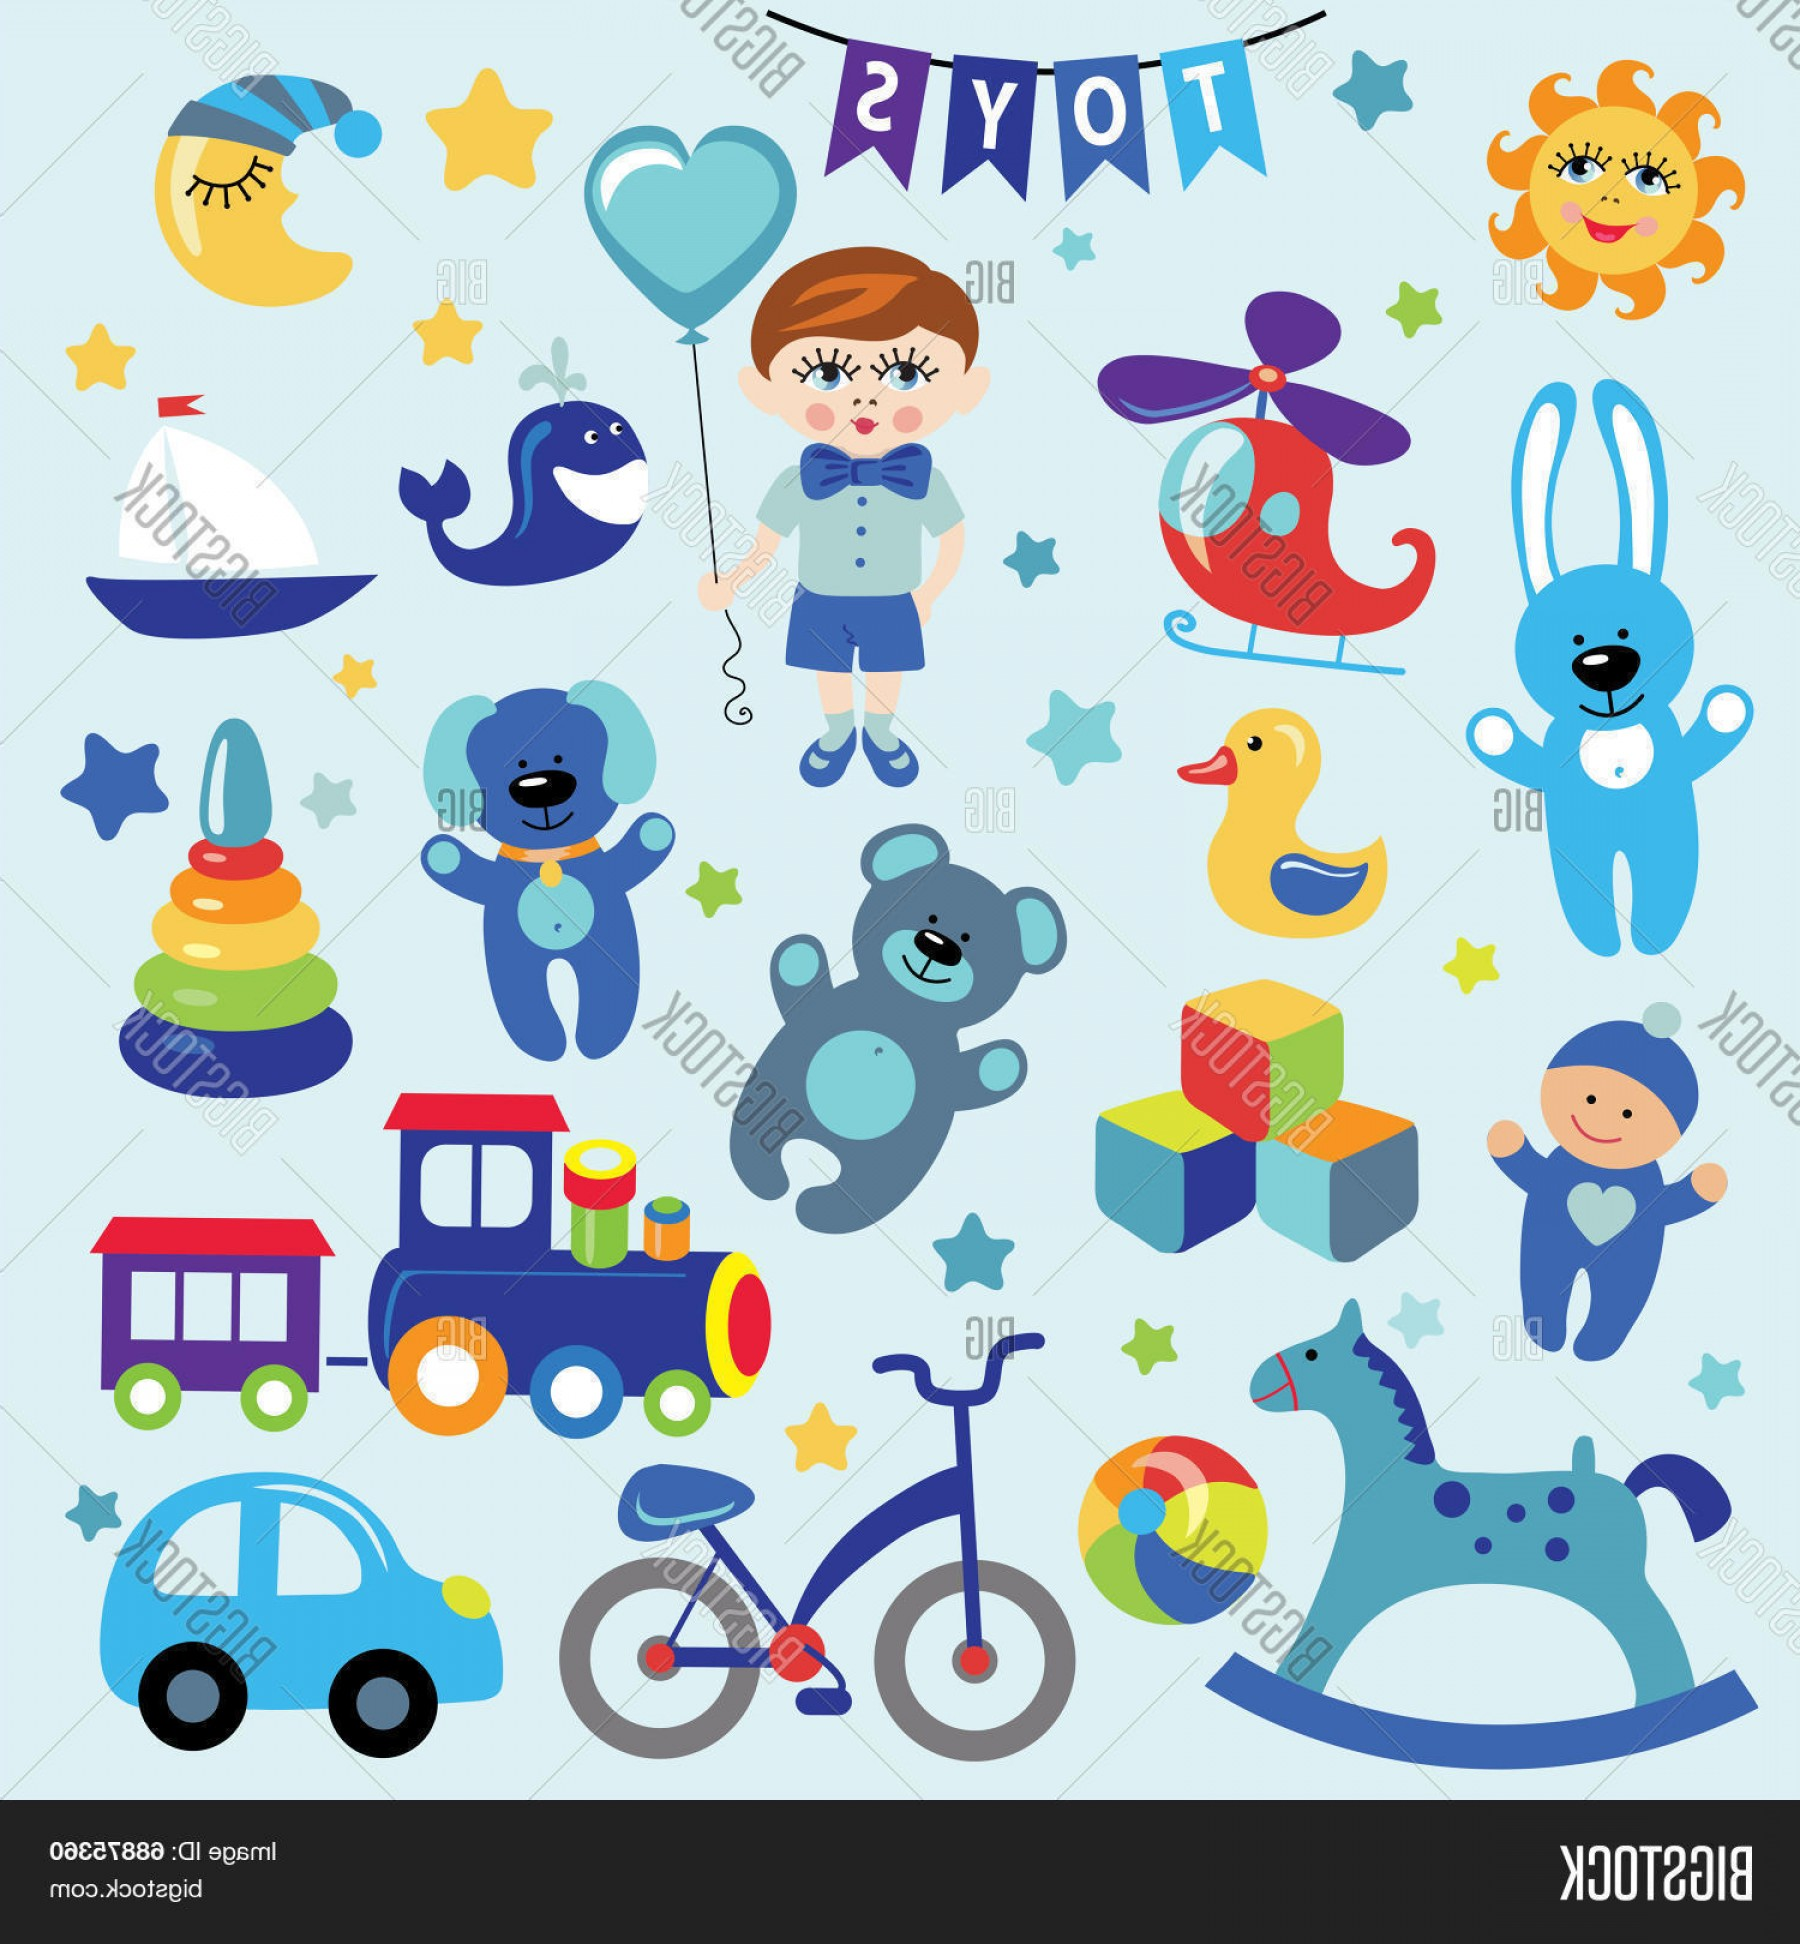 Baby Toy Vector: Stock Vector Baby Boy With Baby Toy Icons